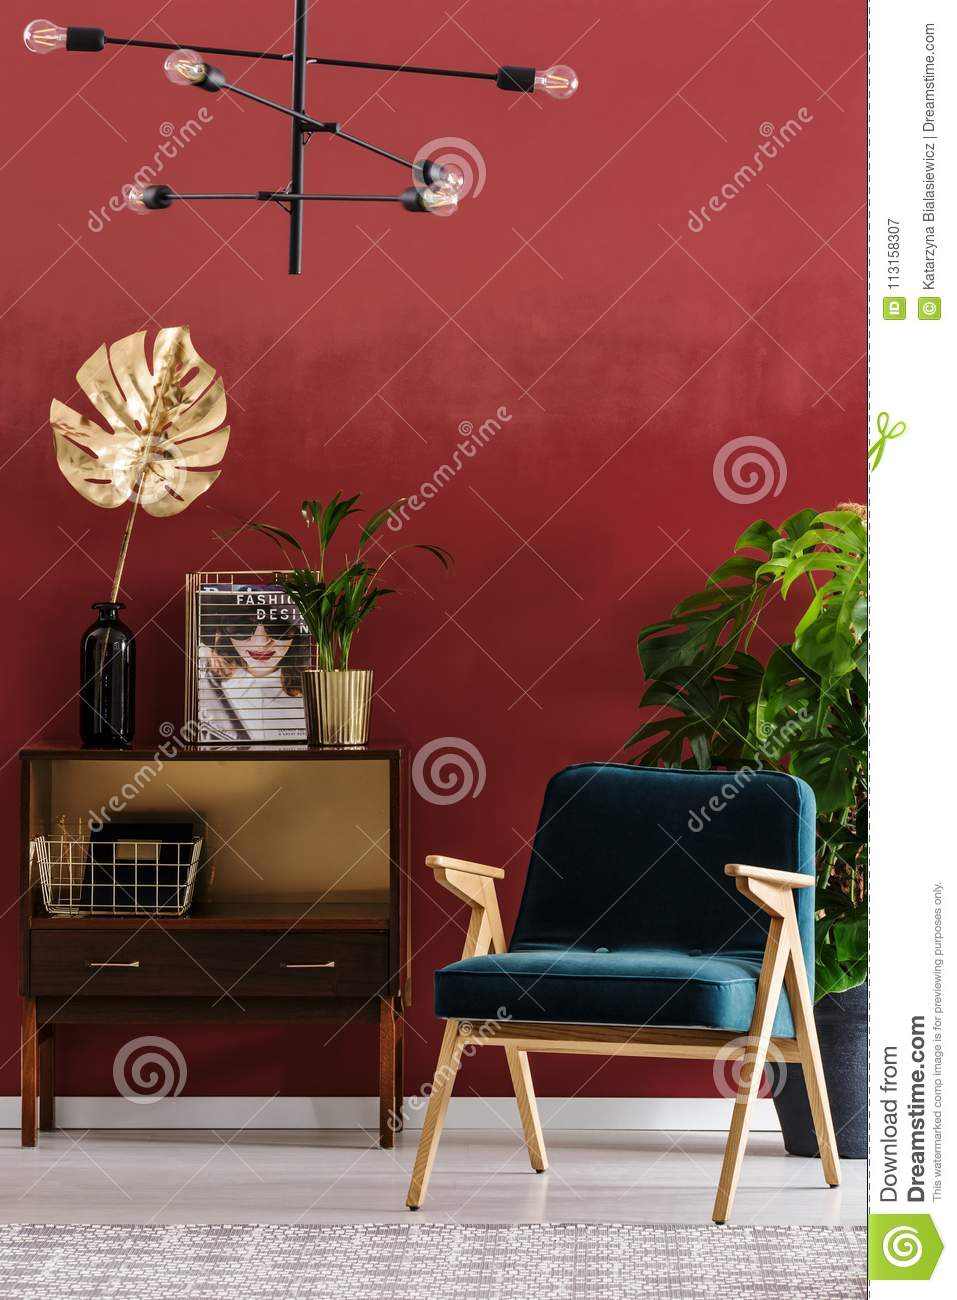 green and red living room sectional design stock image of decor 113158307